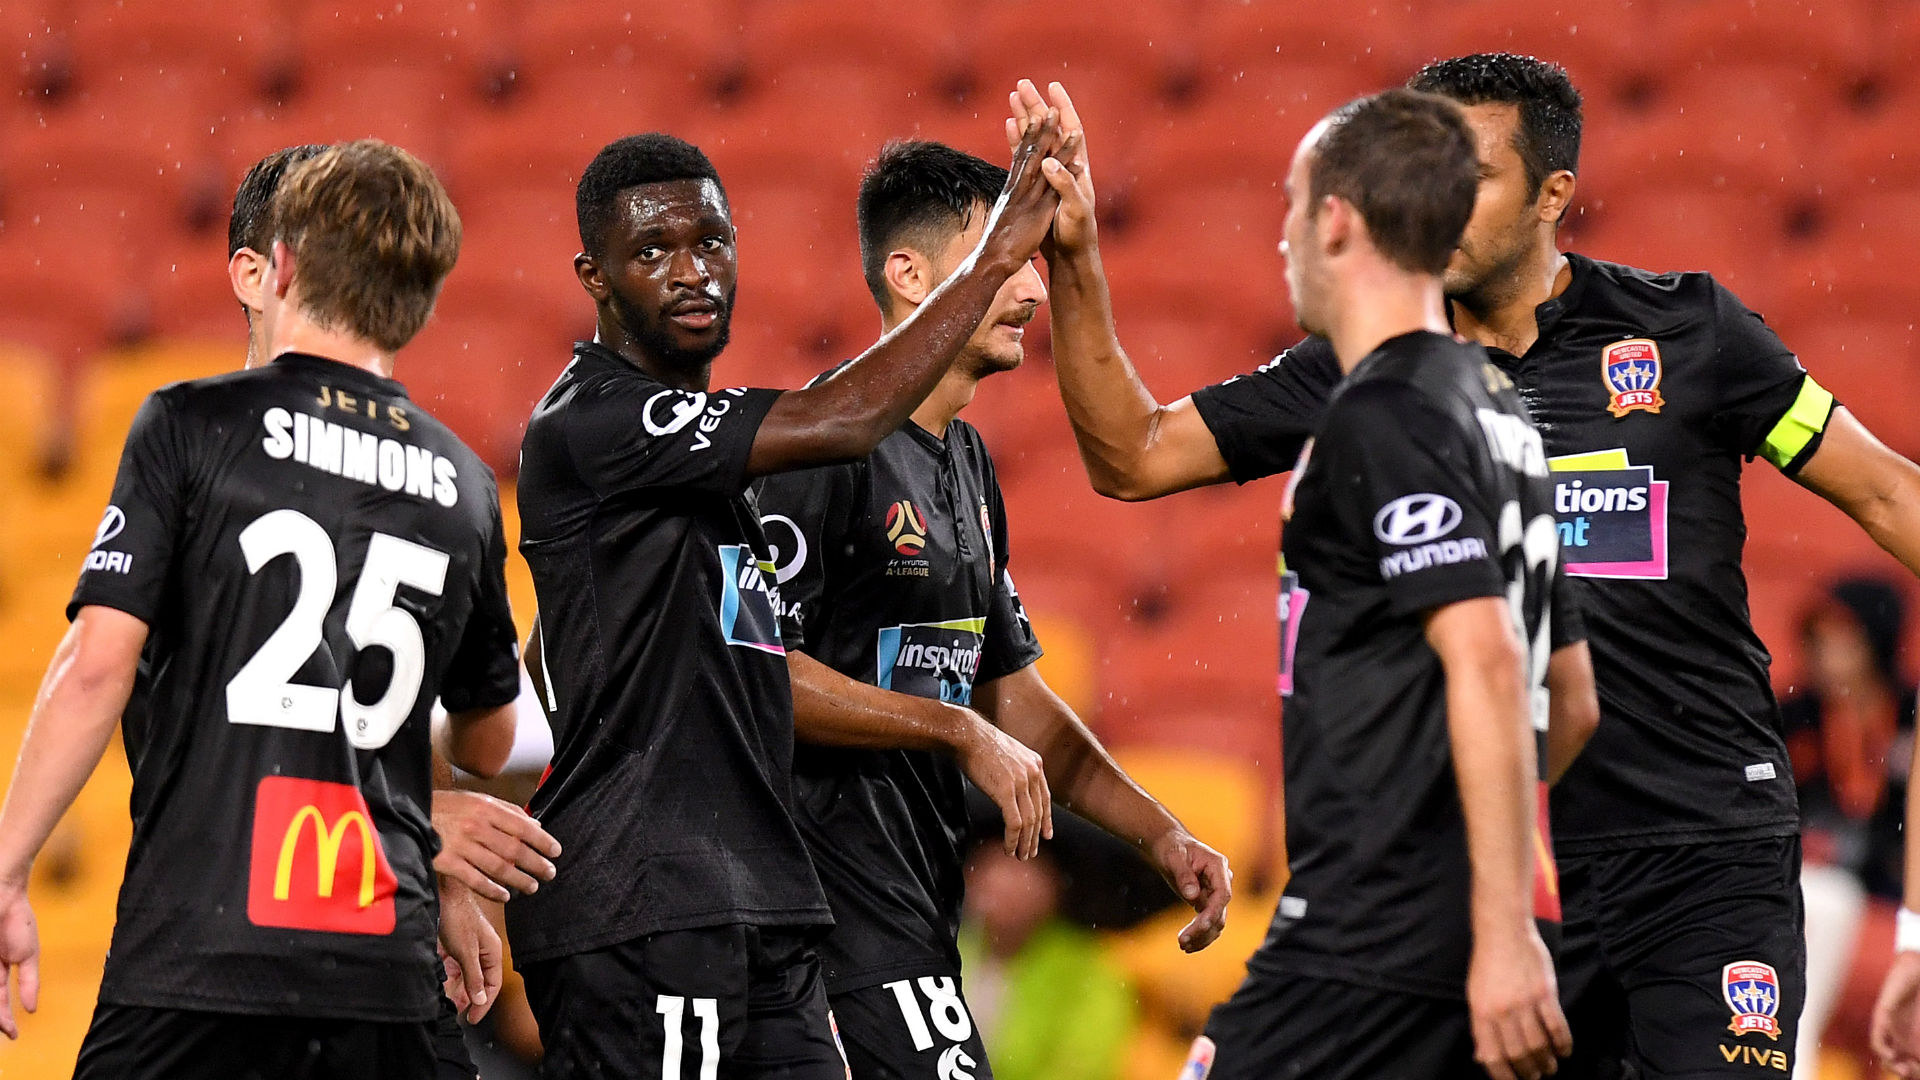 A-League Review: Brisbane Roar in historic humiliation at home to Newcastle Jets